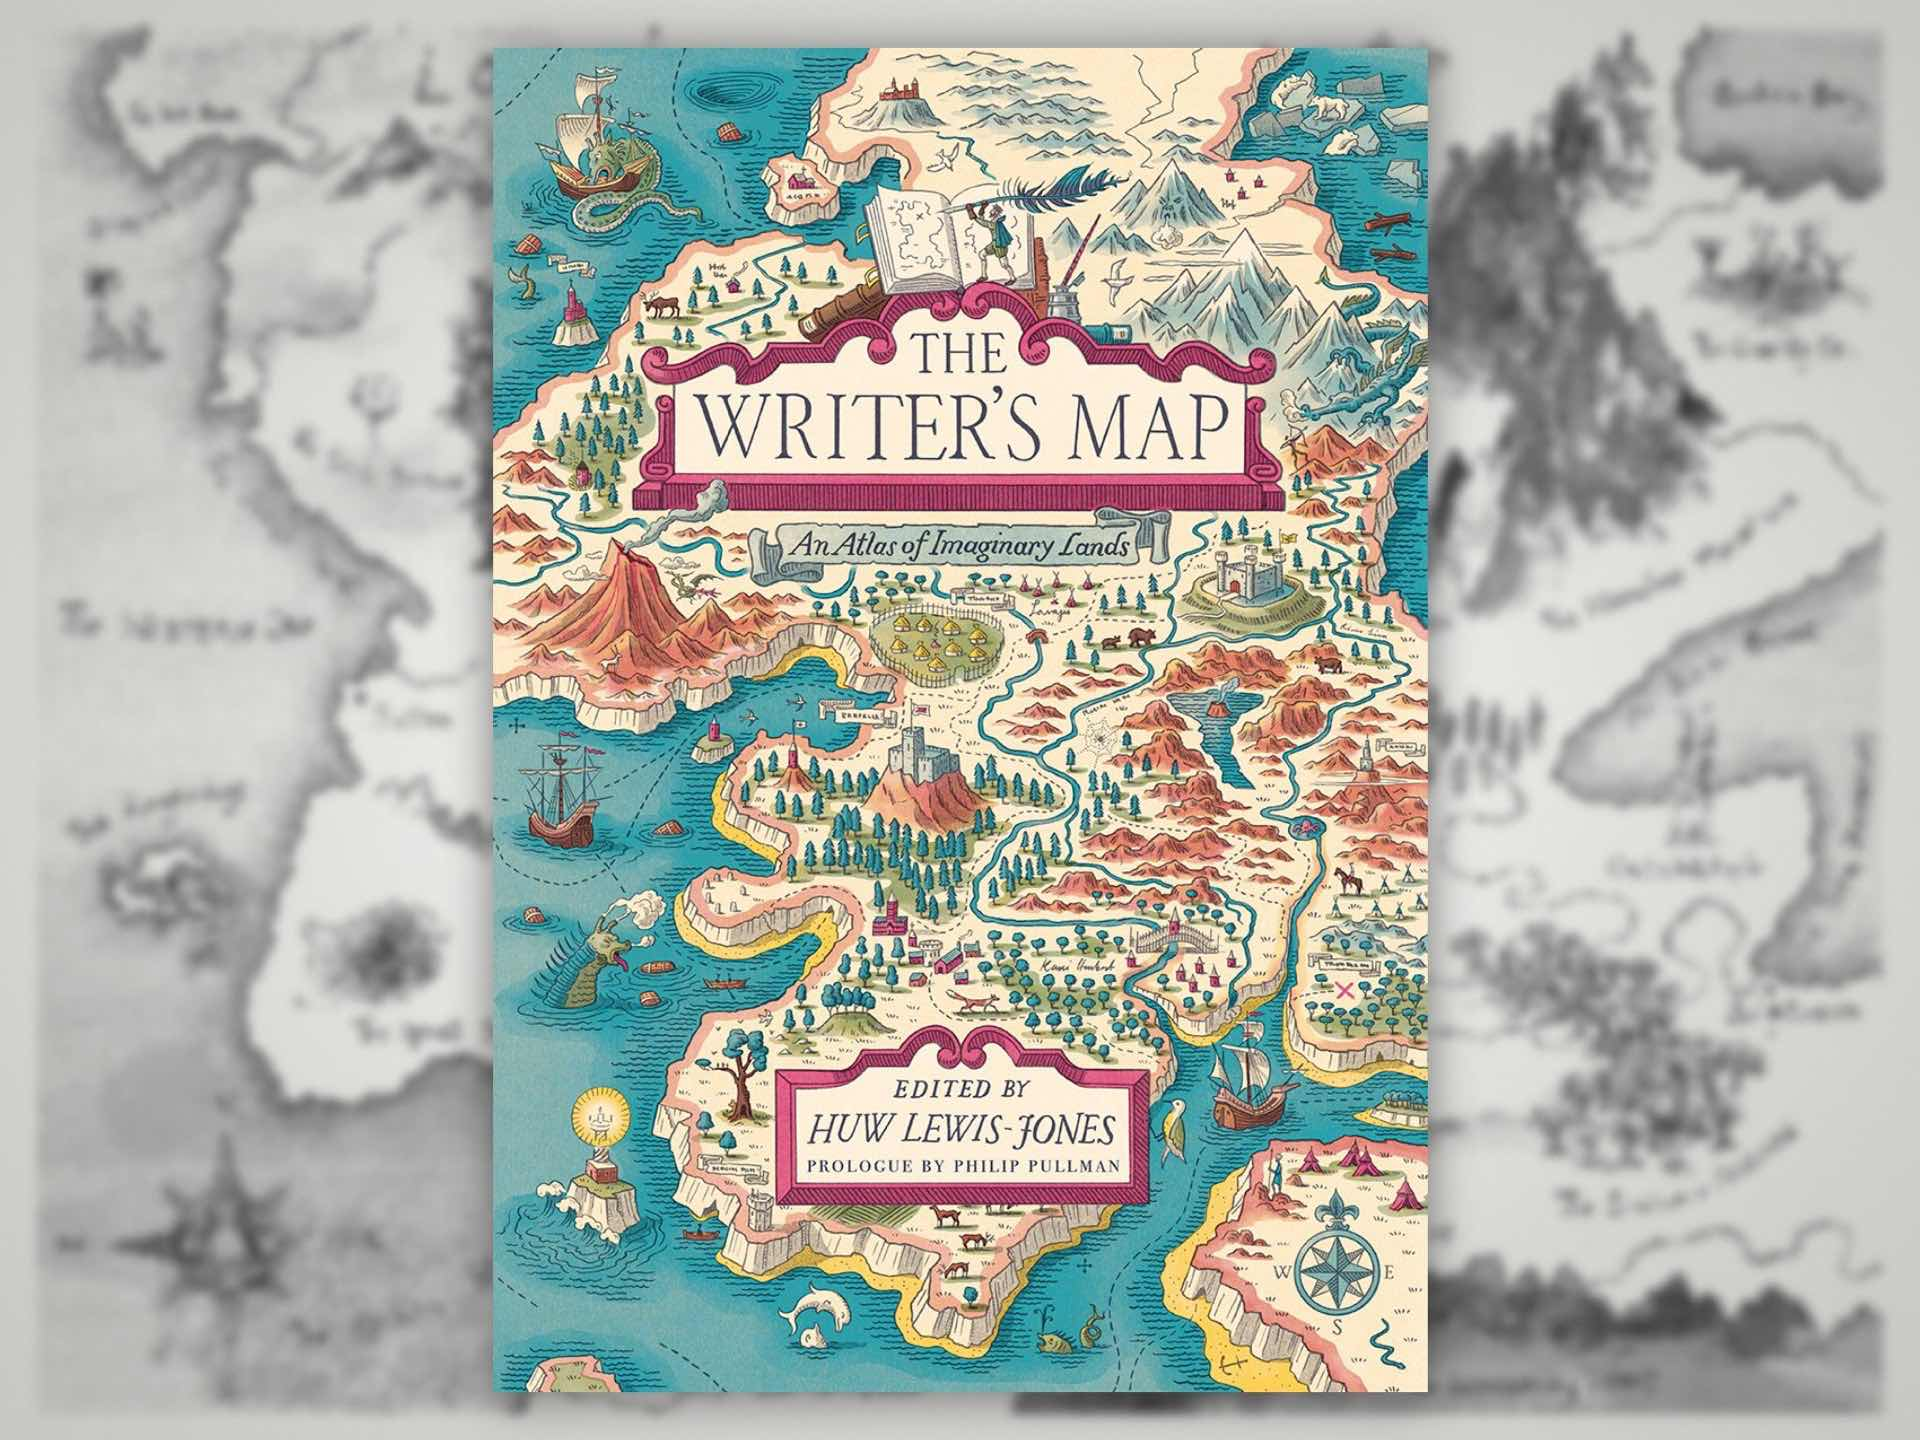 The Writer's Map: An Atlas of Imaginary Lands by Huw Lewis-Jones. ($31 hardcover)